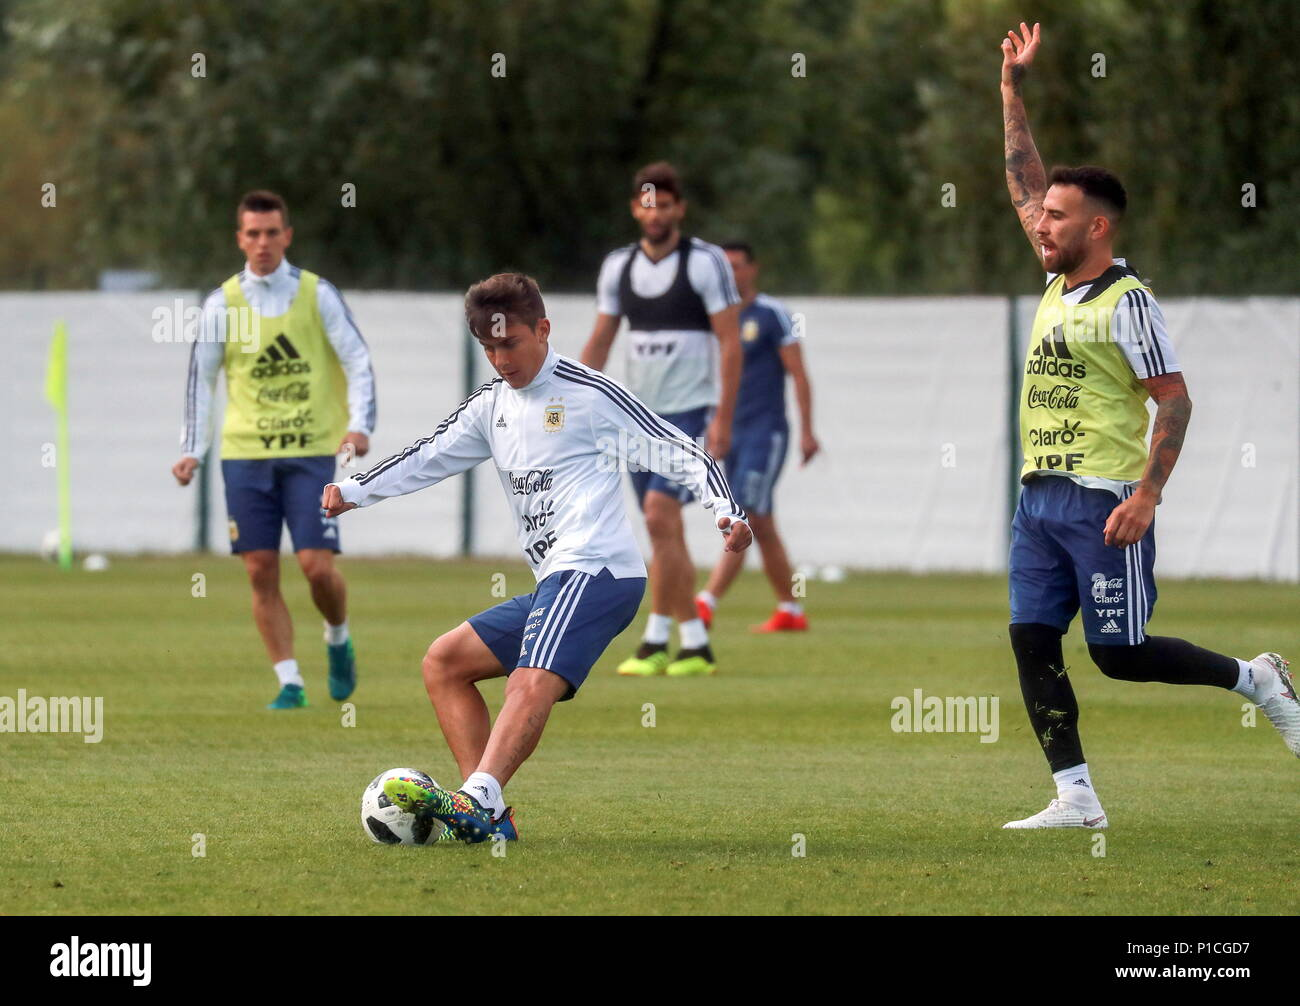 d4369d637e8 ... 2018  Argentinian football player Paulo Dybala (C front) and teammates  during a training session of the Argentinian national football team at ...